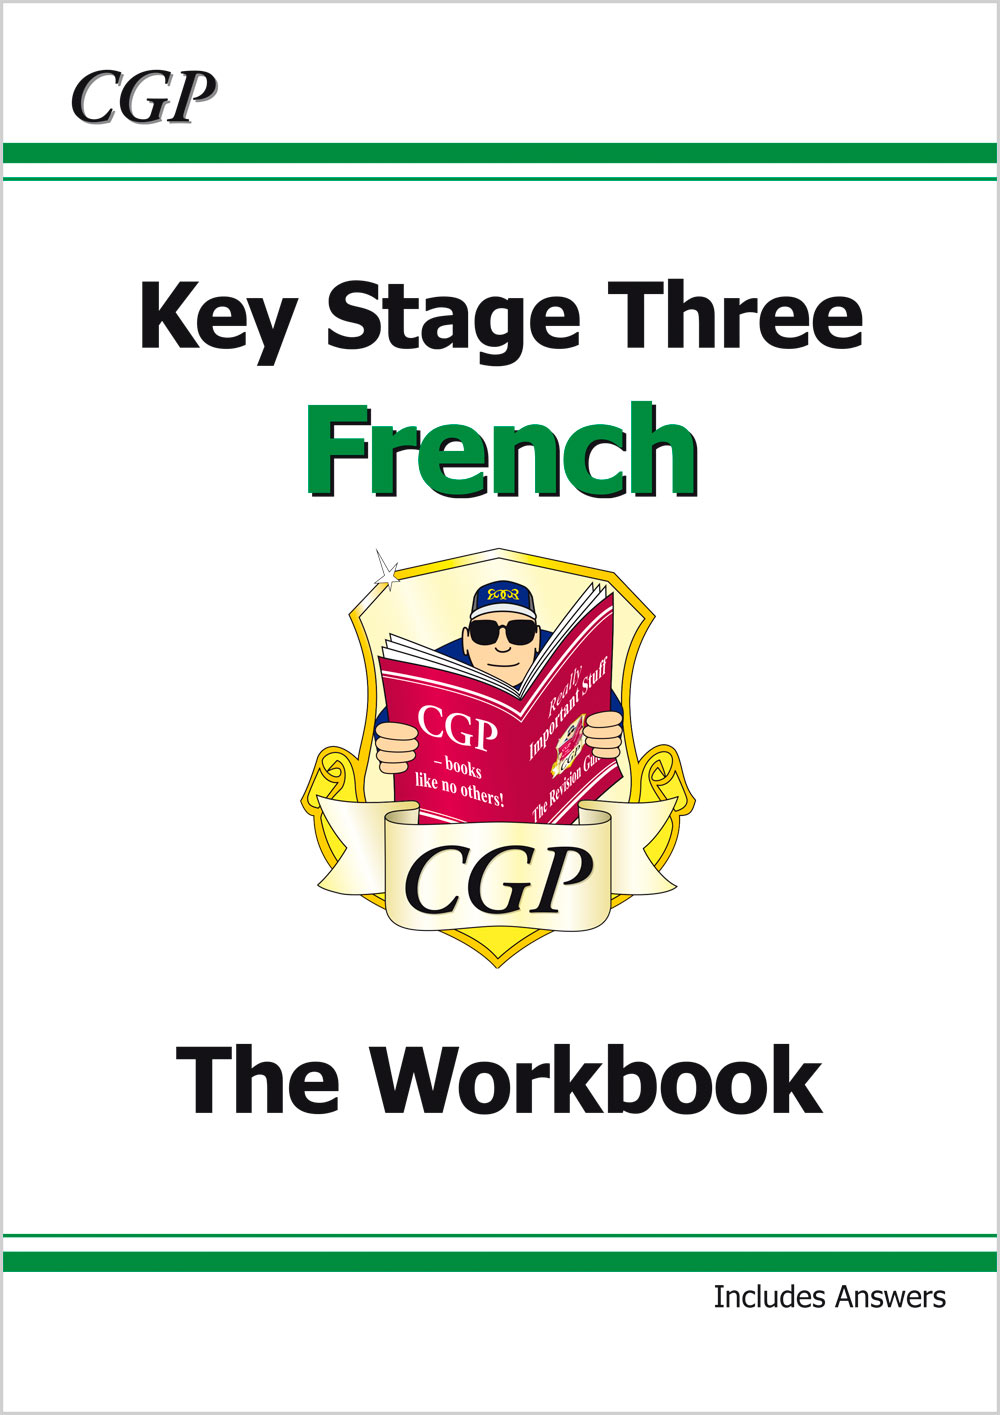 FHW32 - KS3 French Workbook with Answers